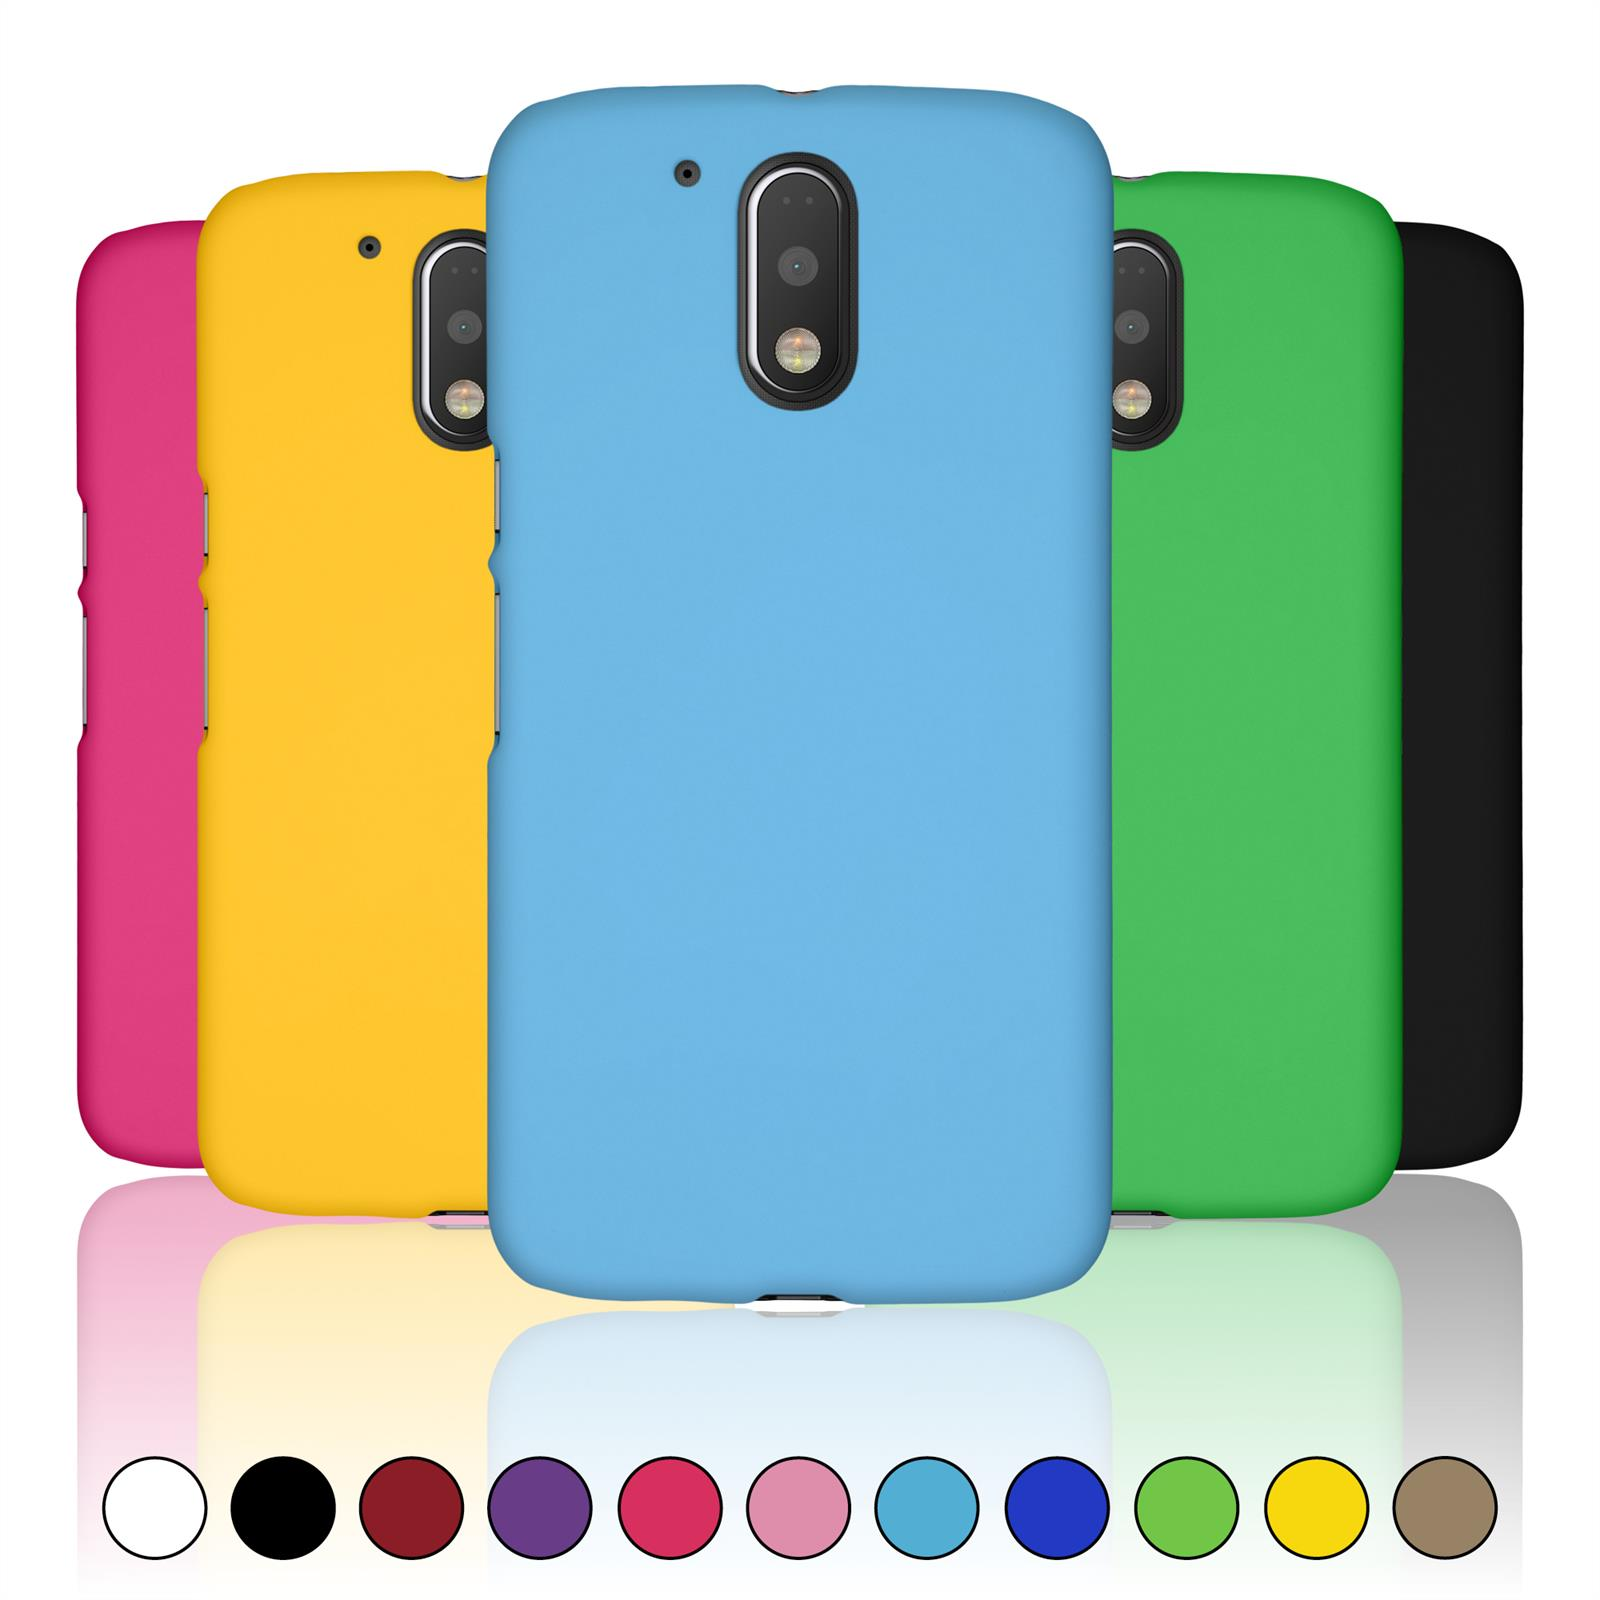 Cover Case For Motorola Moto G3, G4, G4 Plus, G4 Play, X Play + Protective Foils